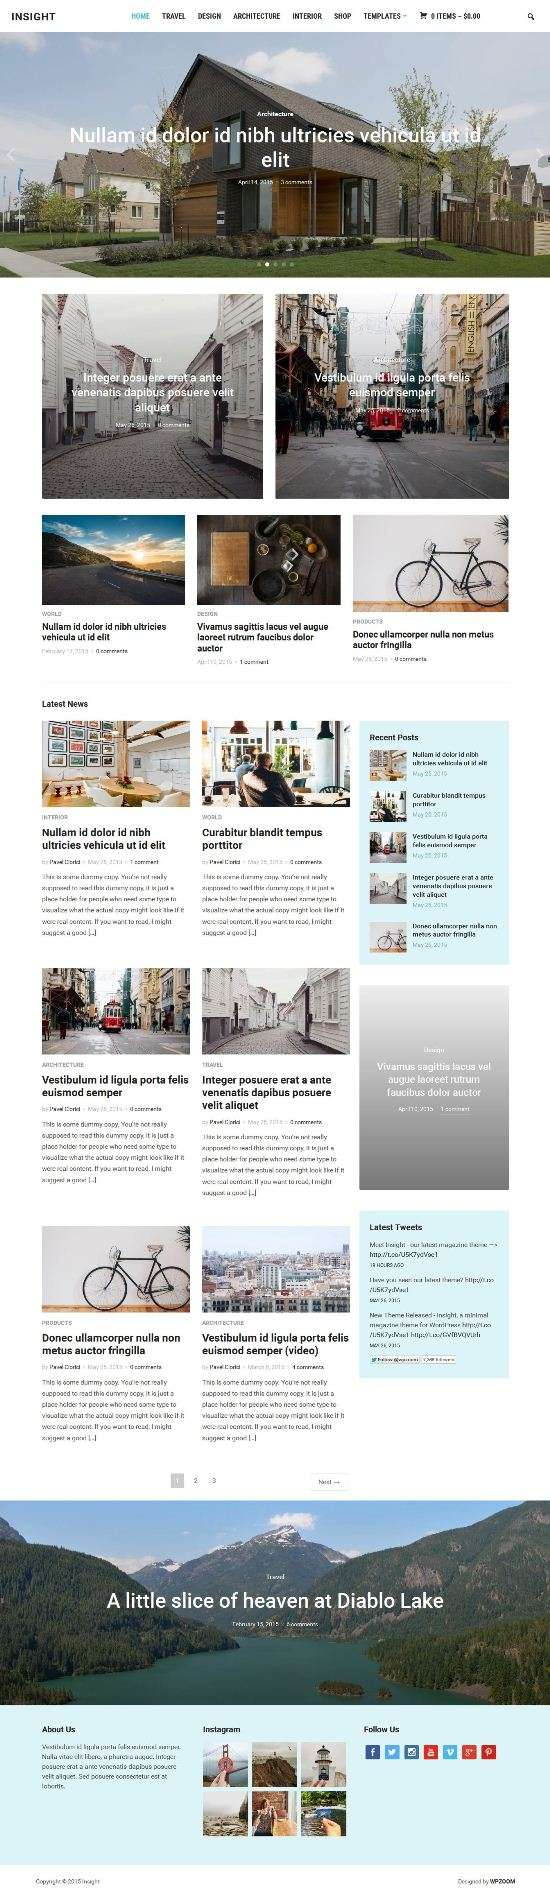 insight-wpzoom-magazine-wordpress-theme-01